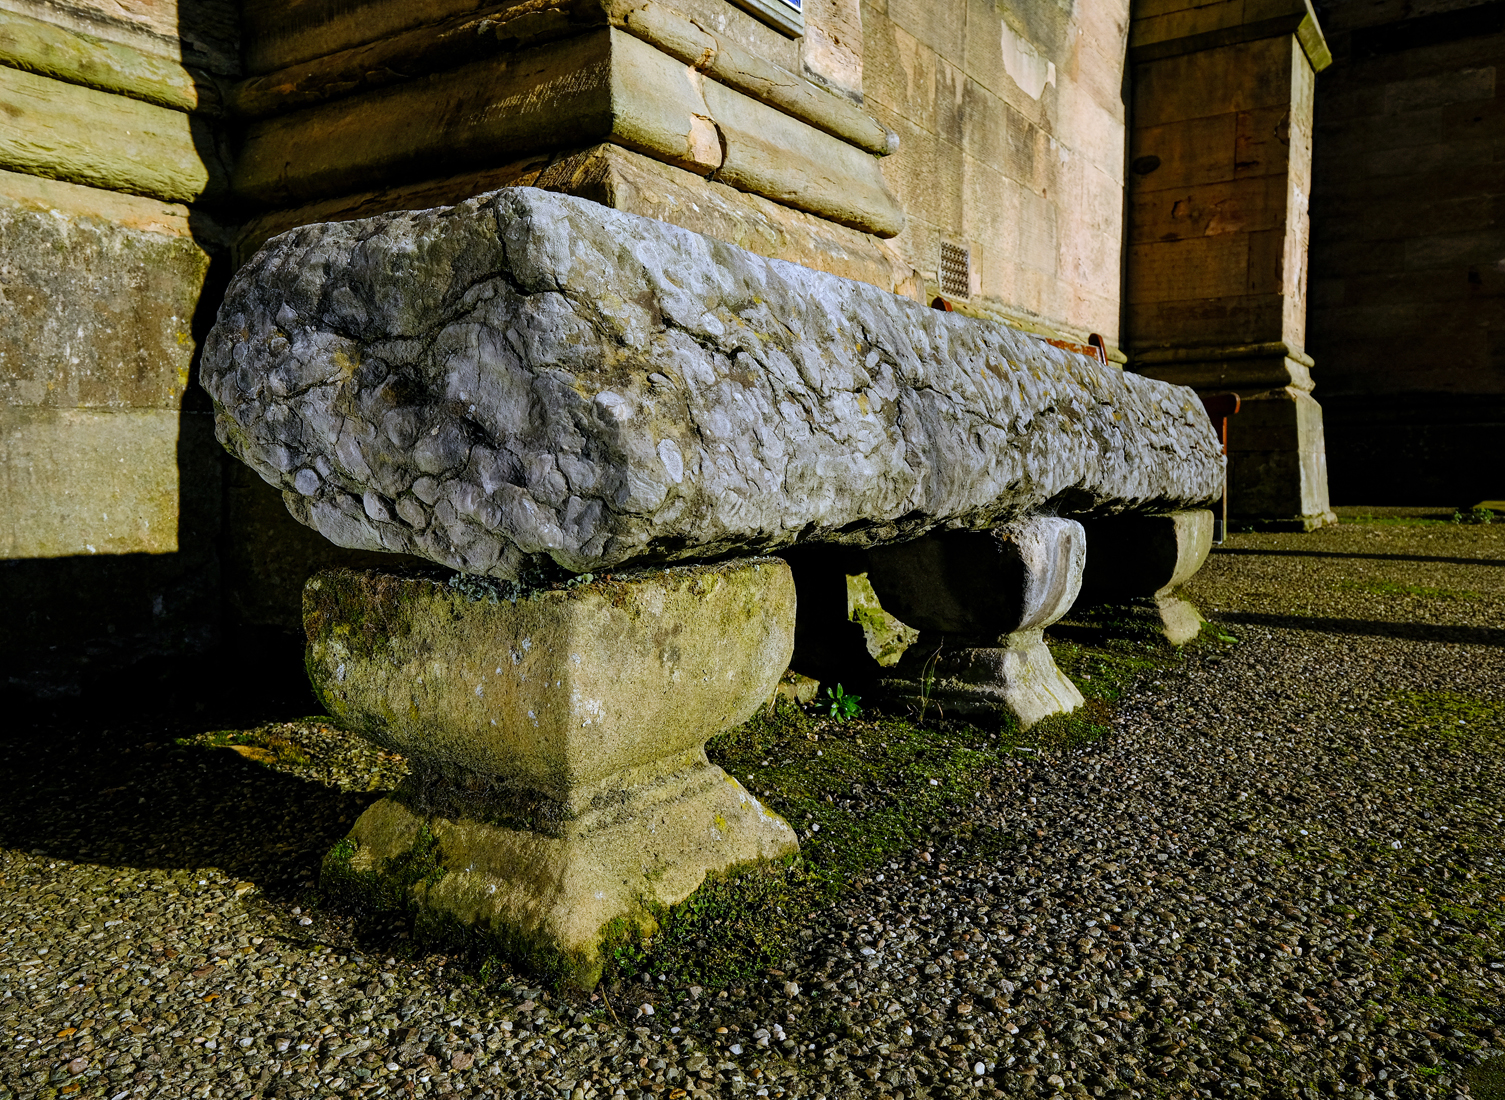 Length of stone 2m and 30cm wide sitting on three stone plinths to make a bench